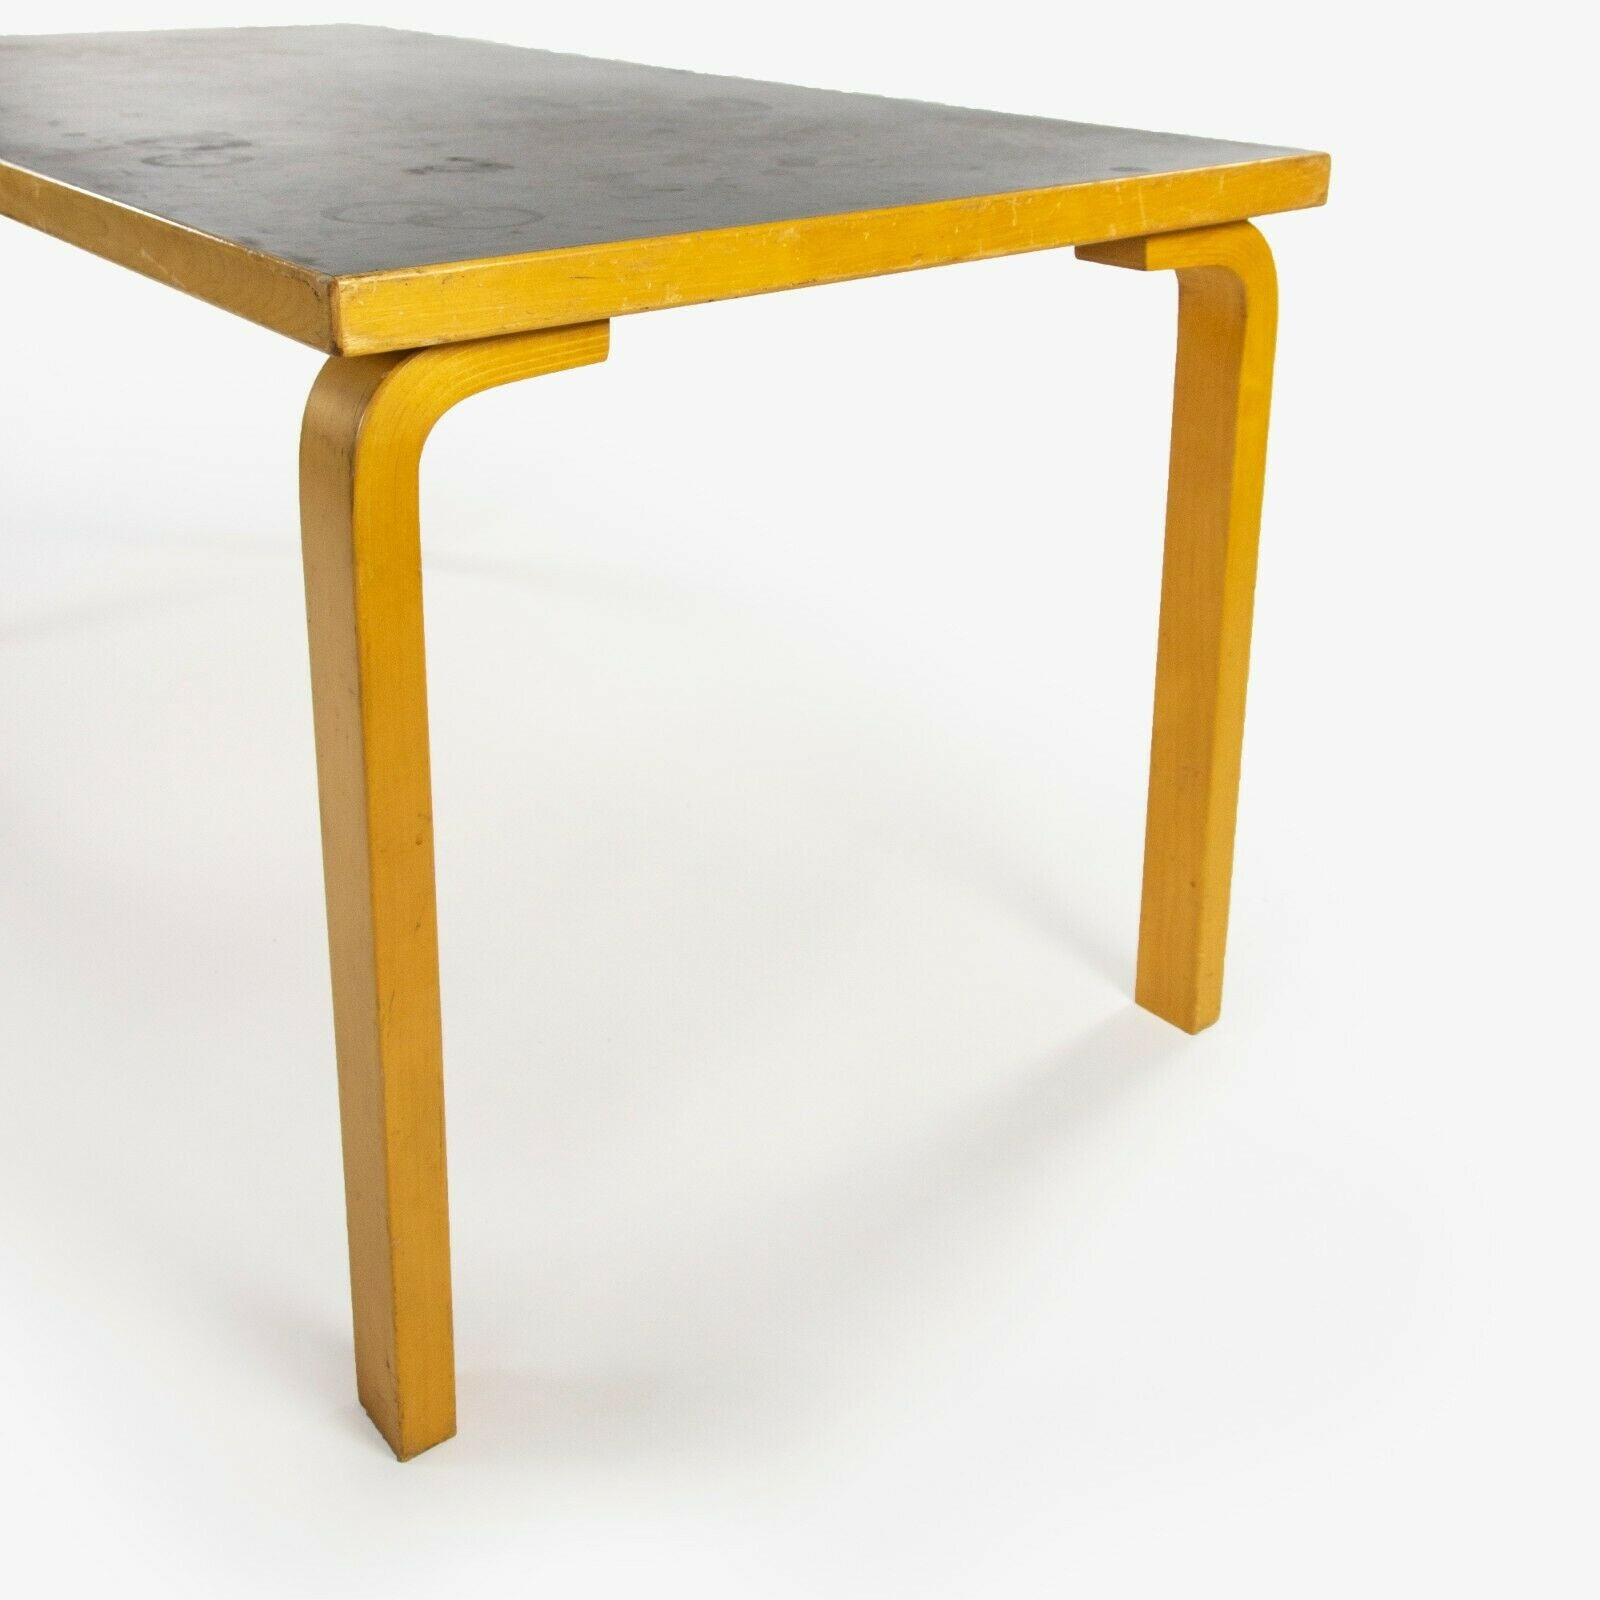 SOLD 1970s Alvar Aalto for Artek L-Leg Birch and Laminate Vintage Dining Table Knoll